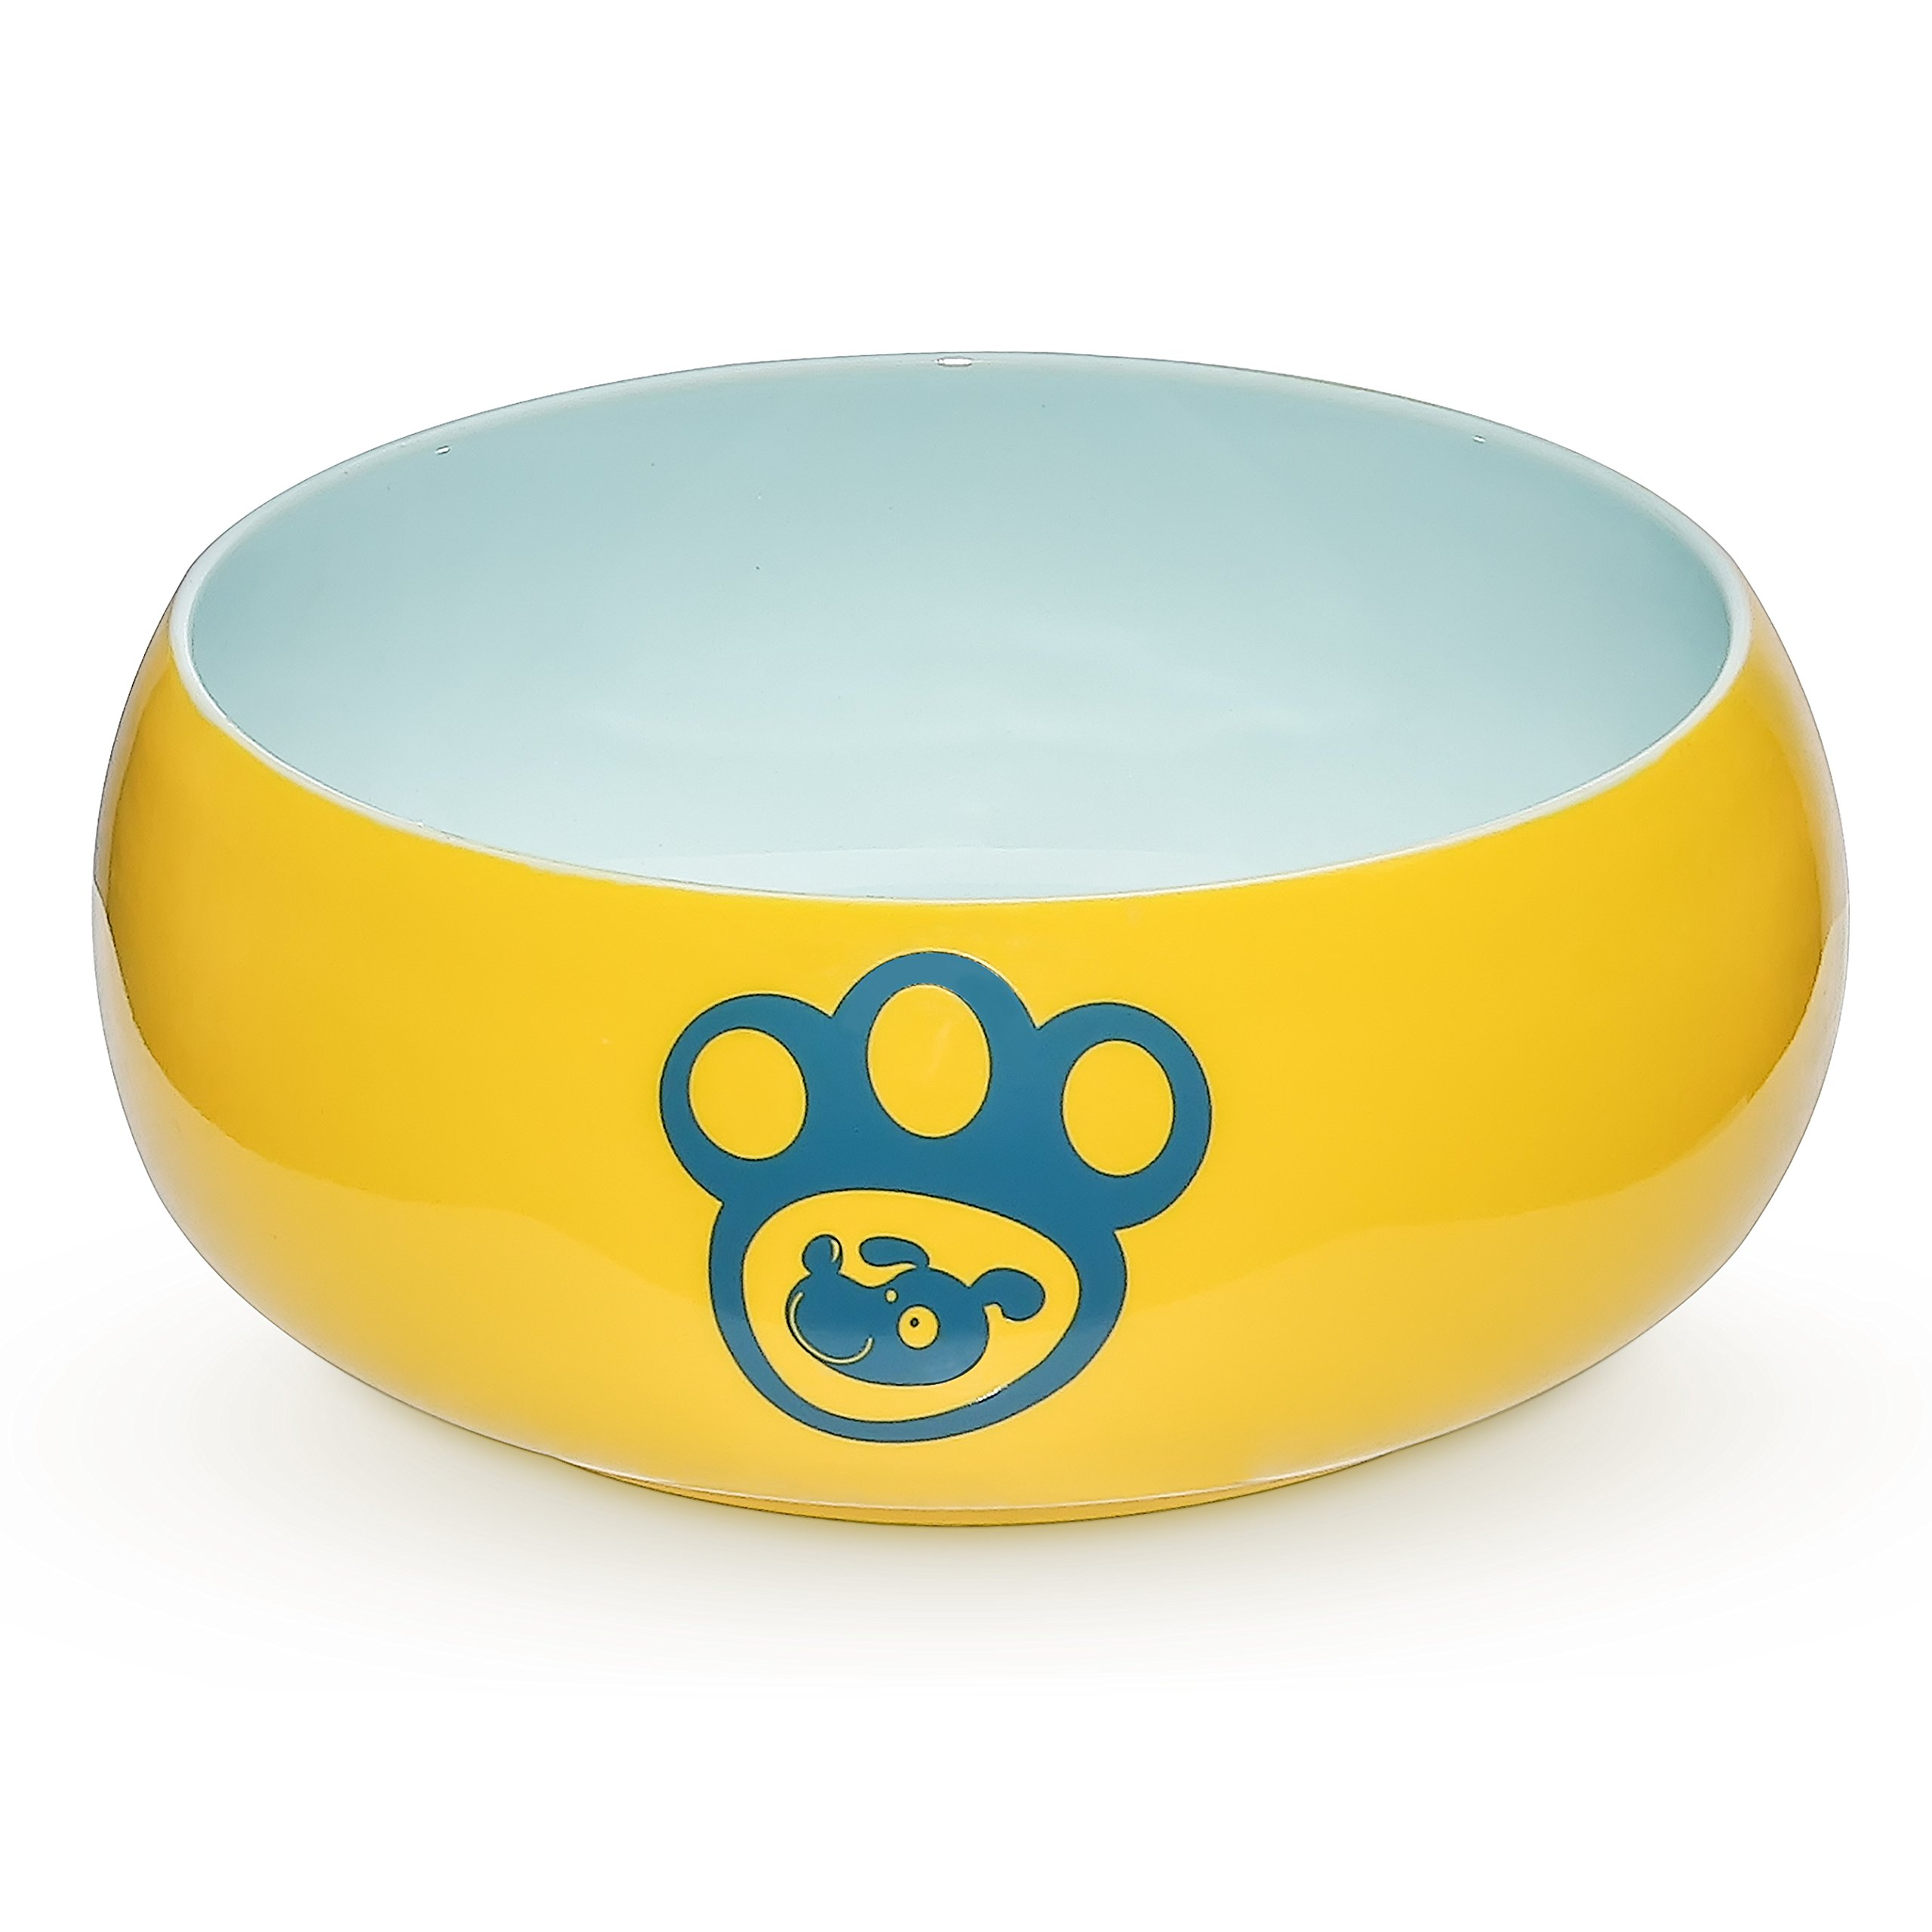 YHY Porcelain Dog Bowls for Food and Water, 55 oz Pet Feeder Bowl with Delicate Paw Printed, Suitable for Medium/Large Size Dog Dish, Yellow …